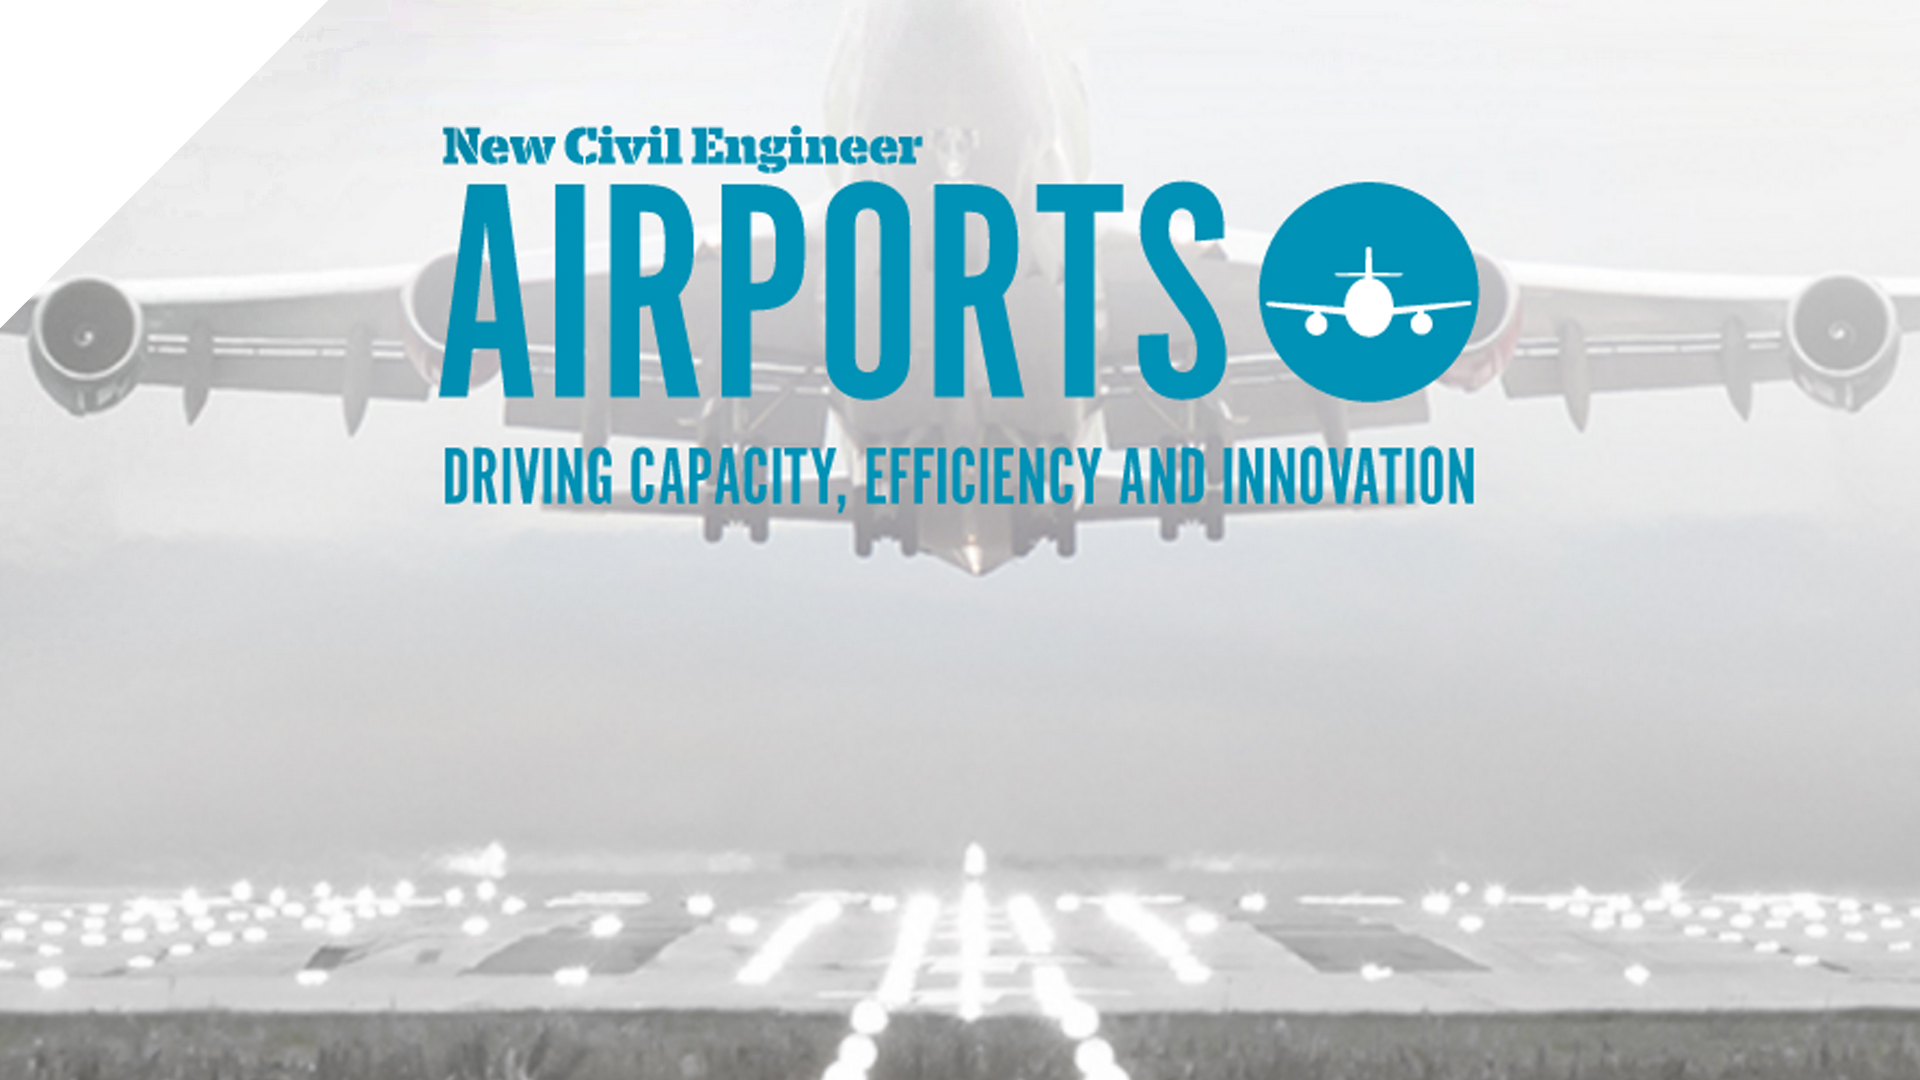 New_Civil_Engineer_Airports